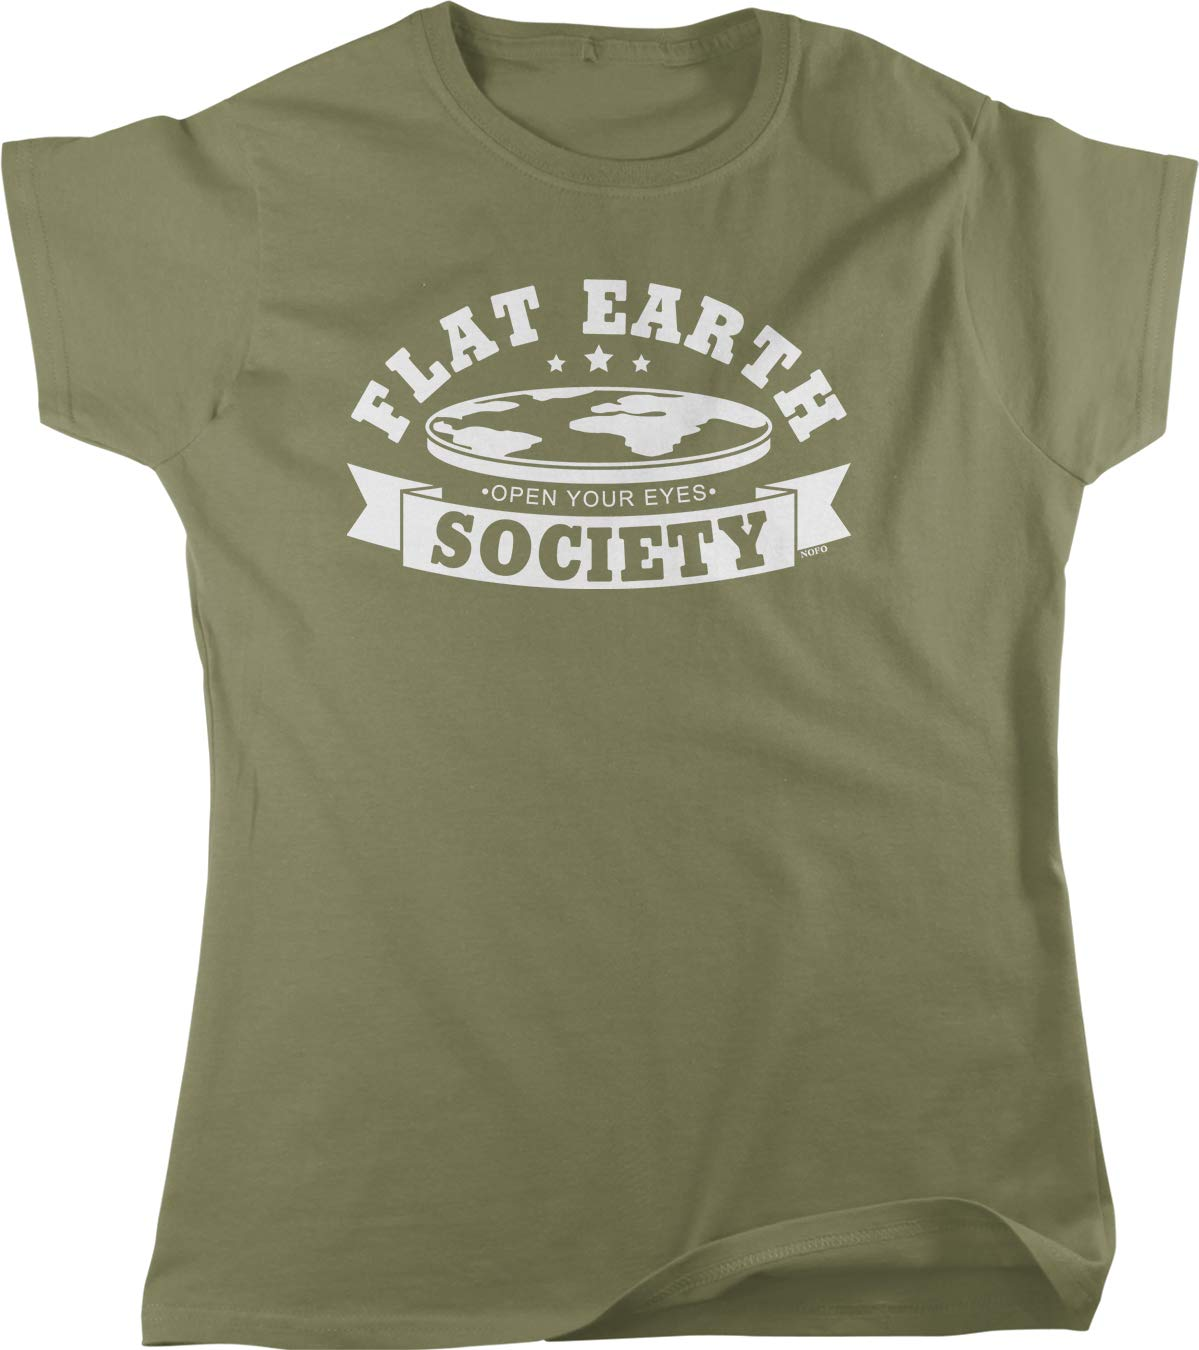 Clothing Co Flat Earth Society Women's Shirts